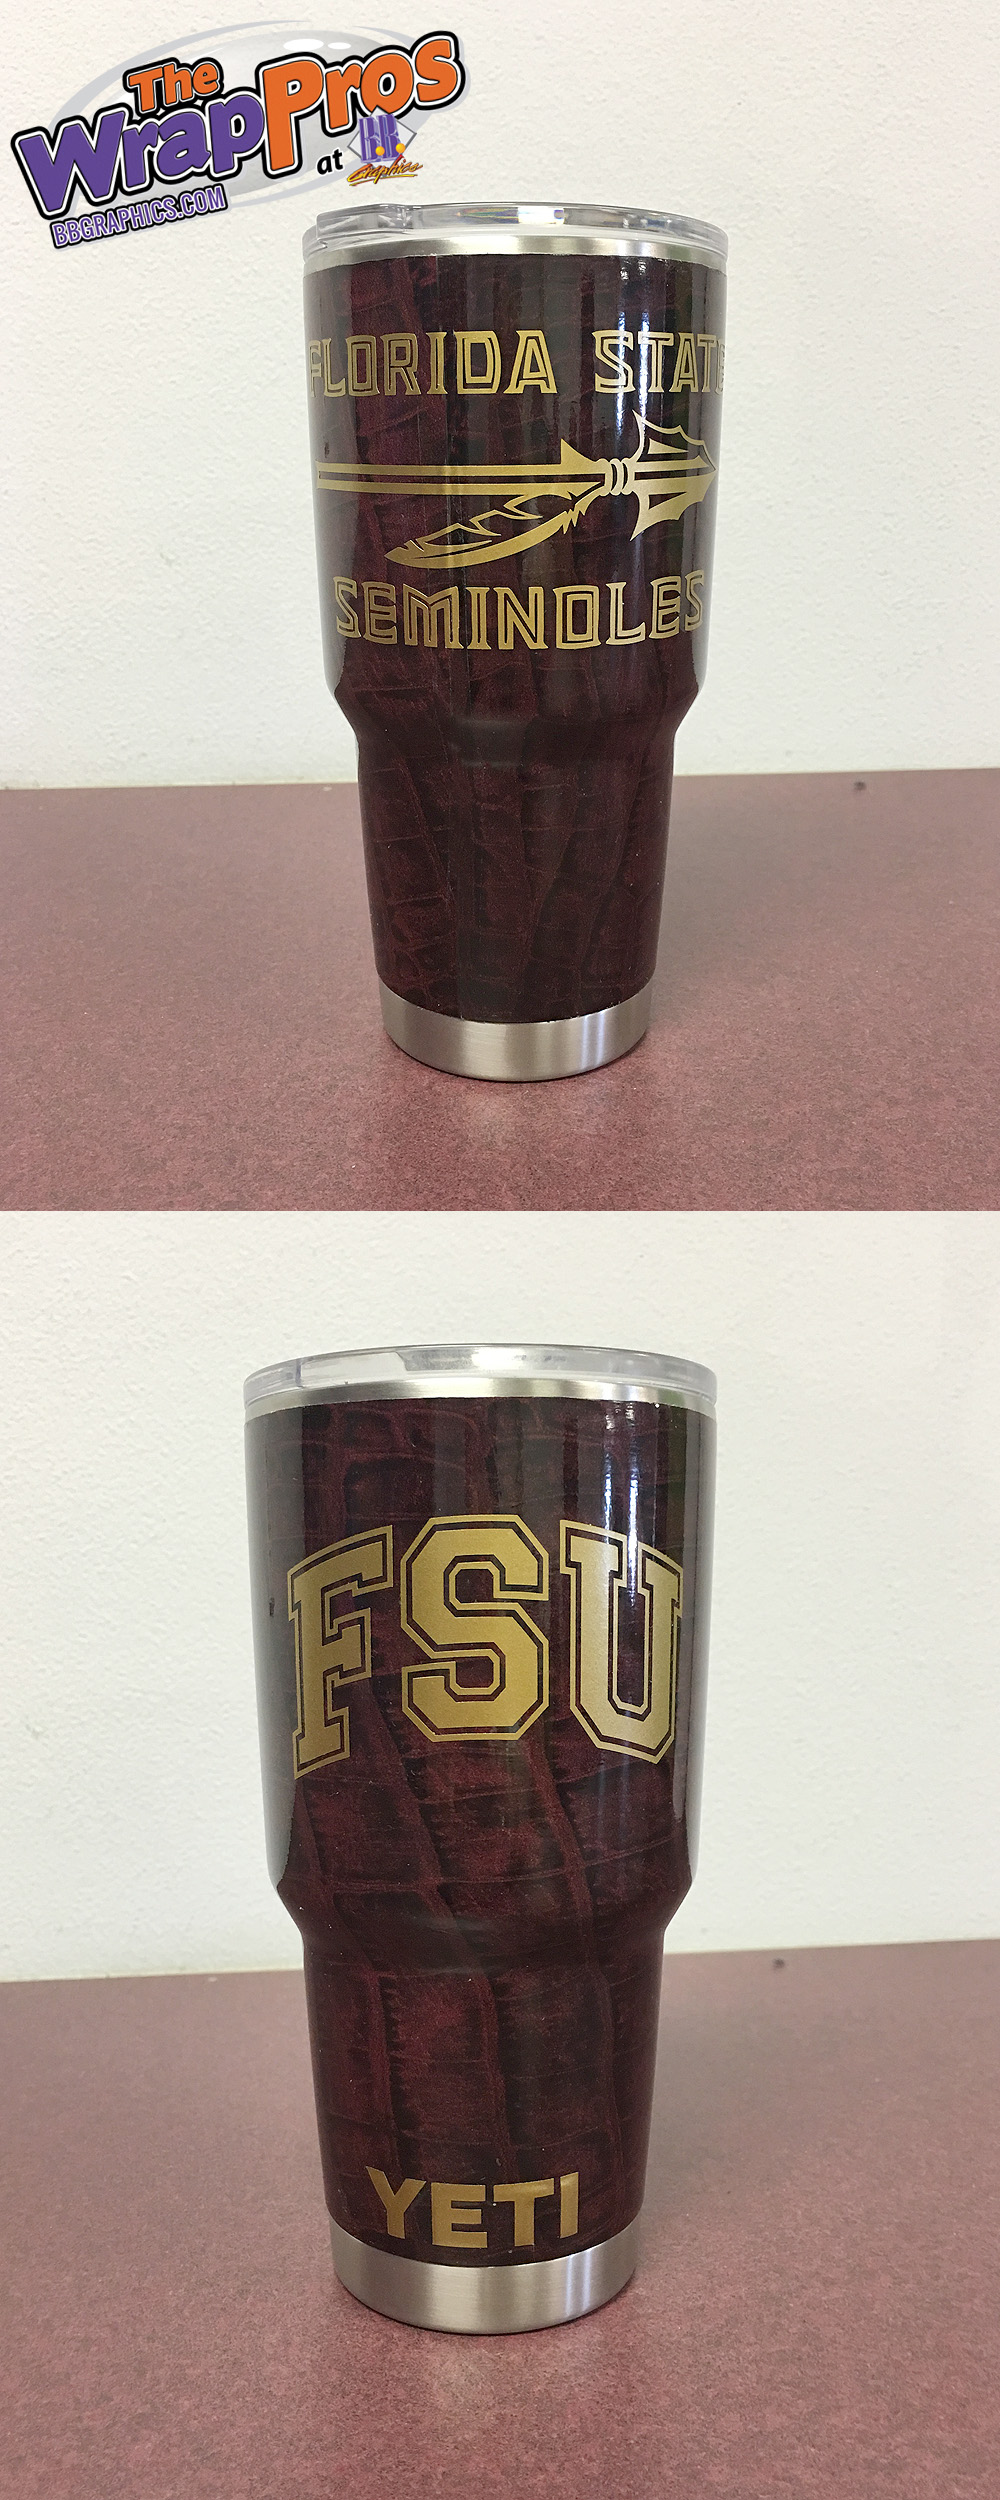 Fsu Yeti Bb Graphics Amp The Wrap Pros